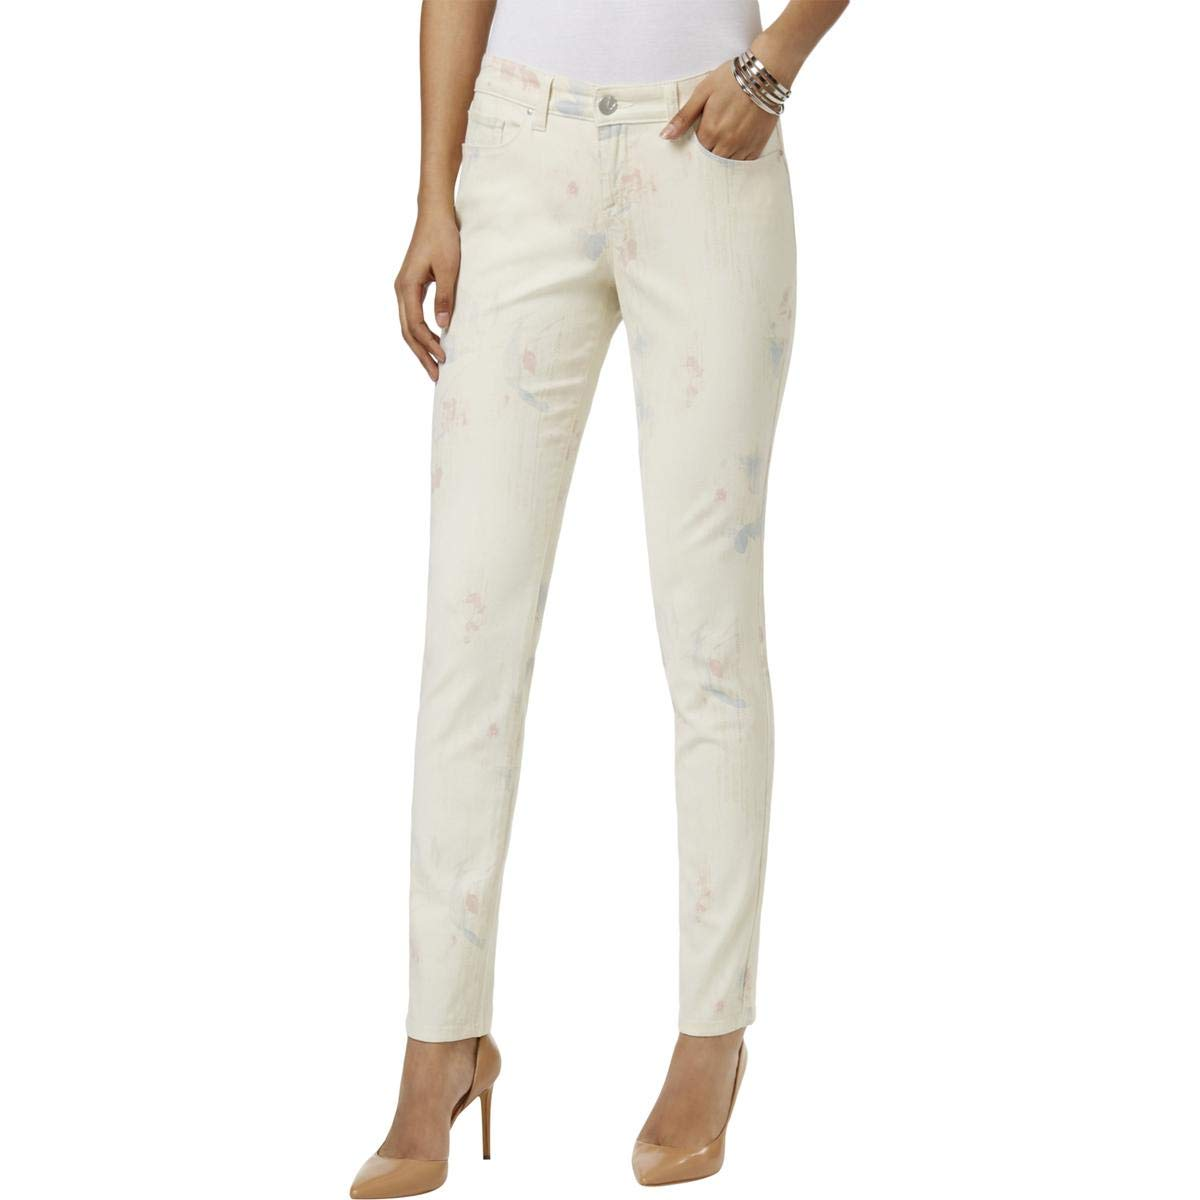 Style & Co. Womens Curvy Printed Colored Skinny Jeans Pink 16